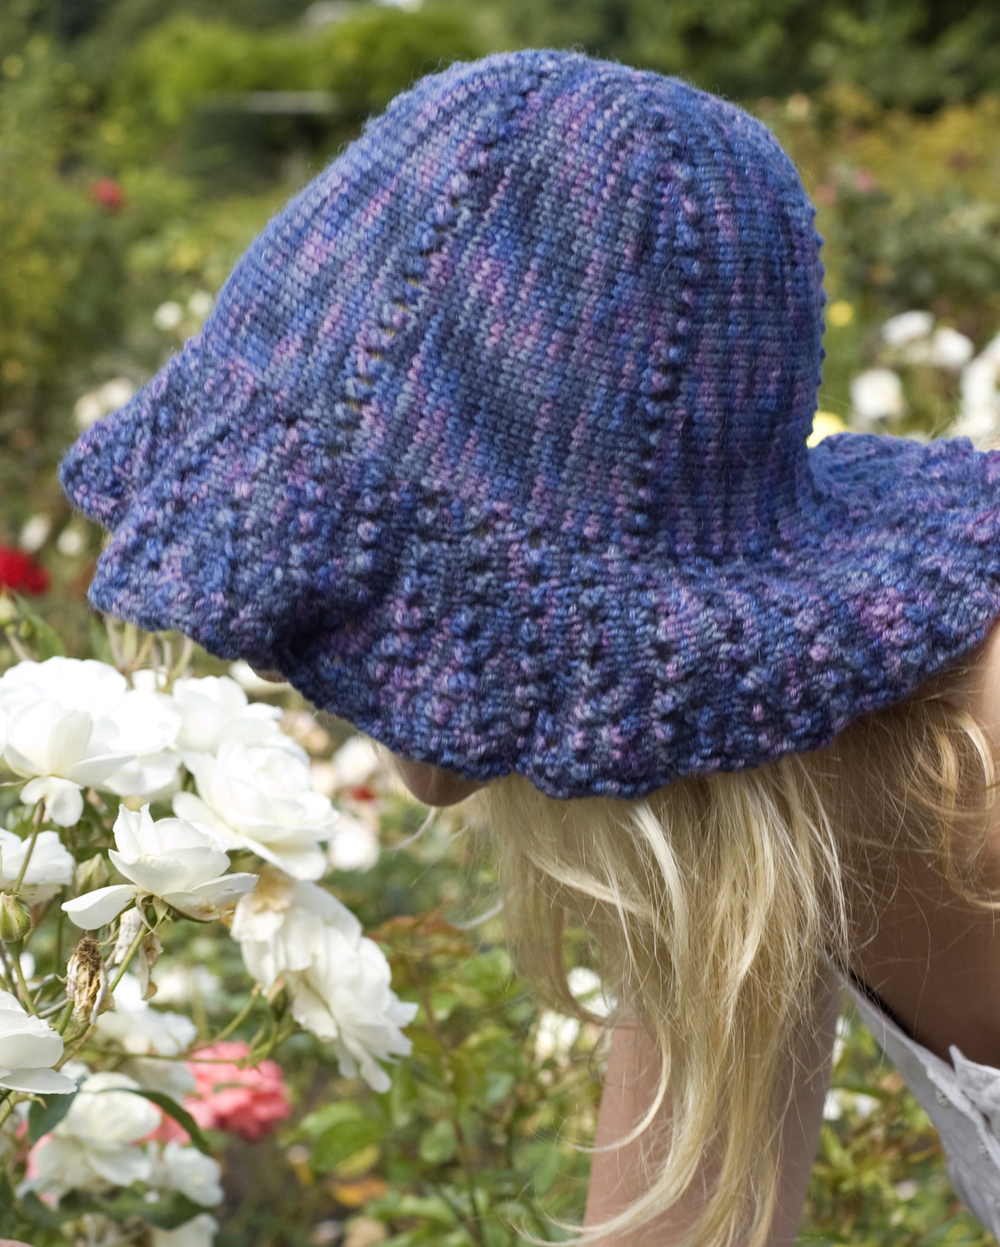 Daisy sideways knit summer lace brimmed Hat pattern